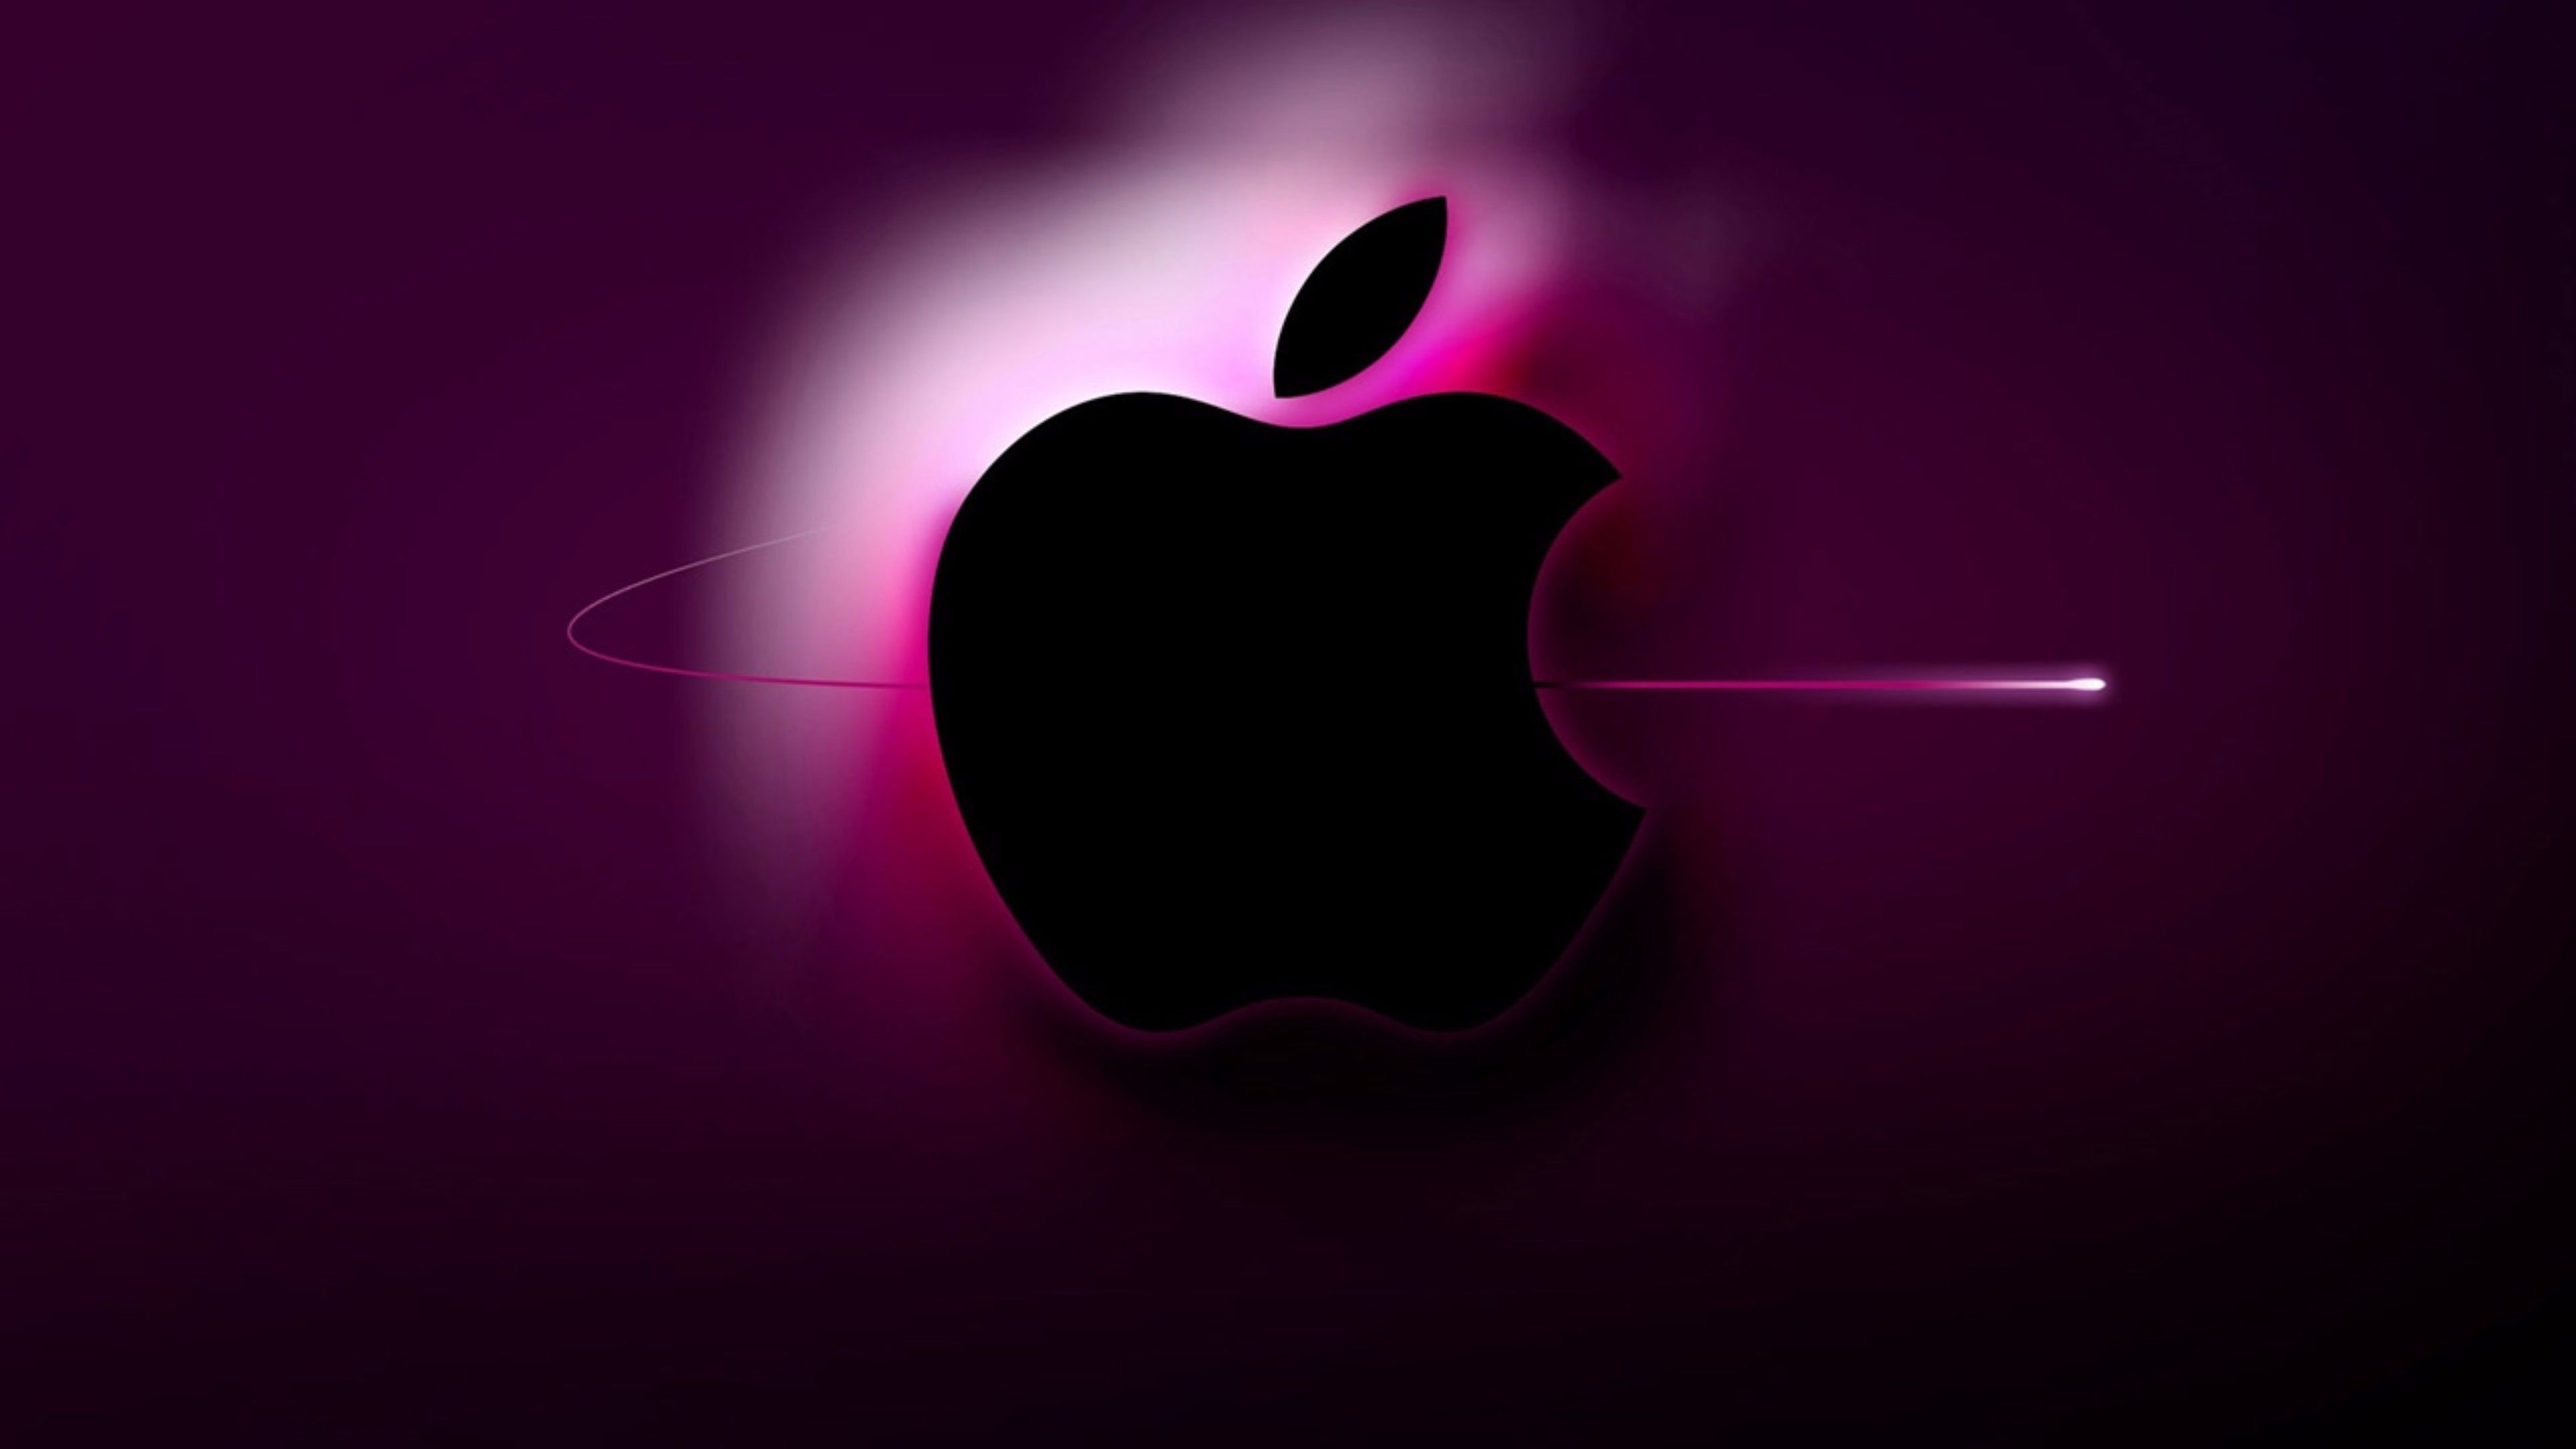 Apple Logo Iphone Wallpaper Hd 4k Download